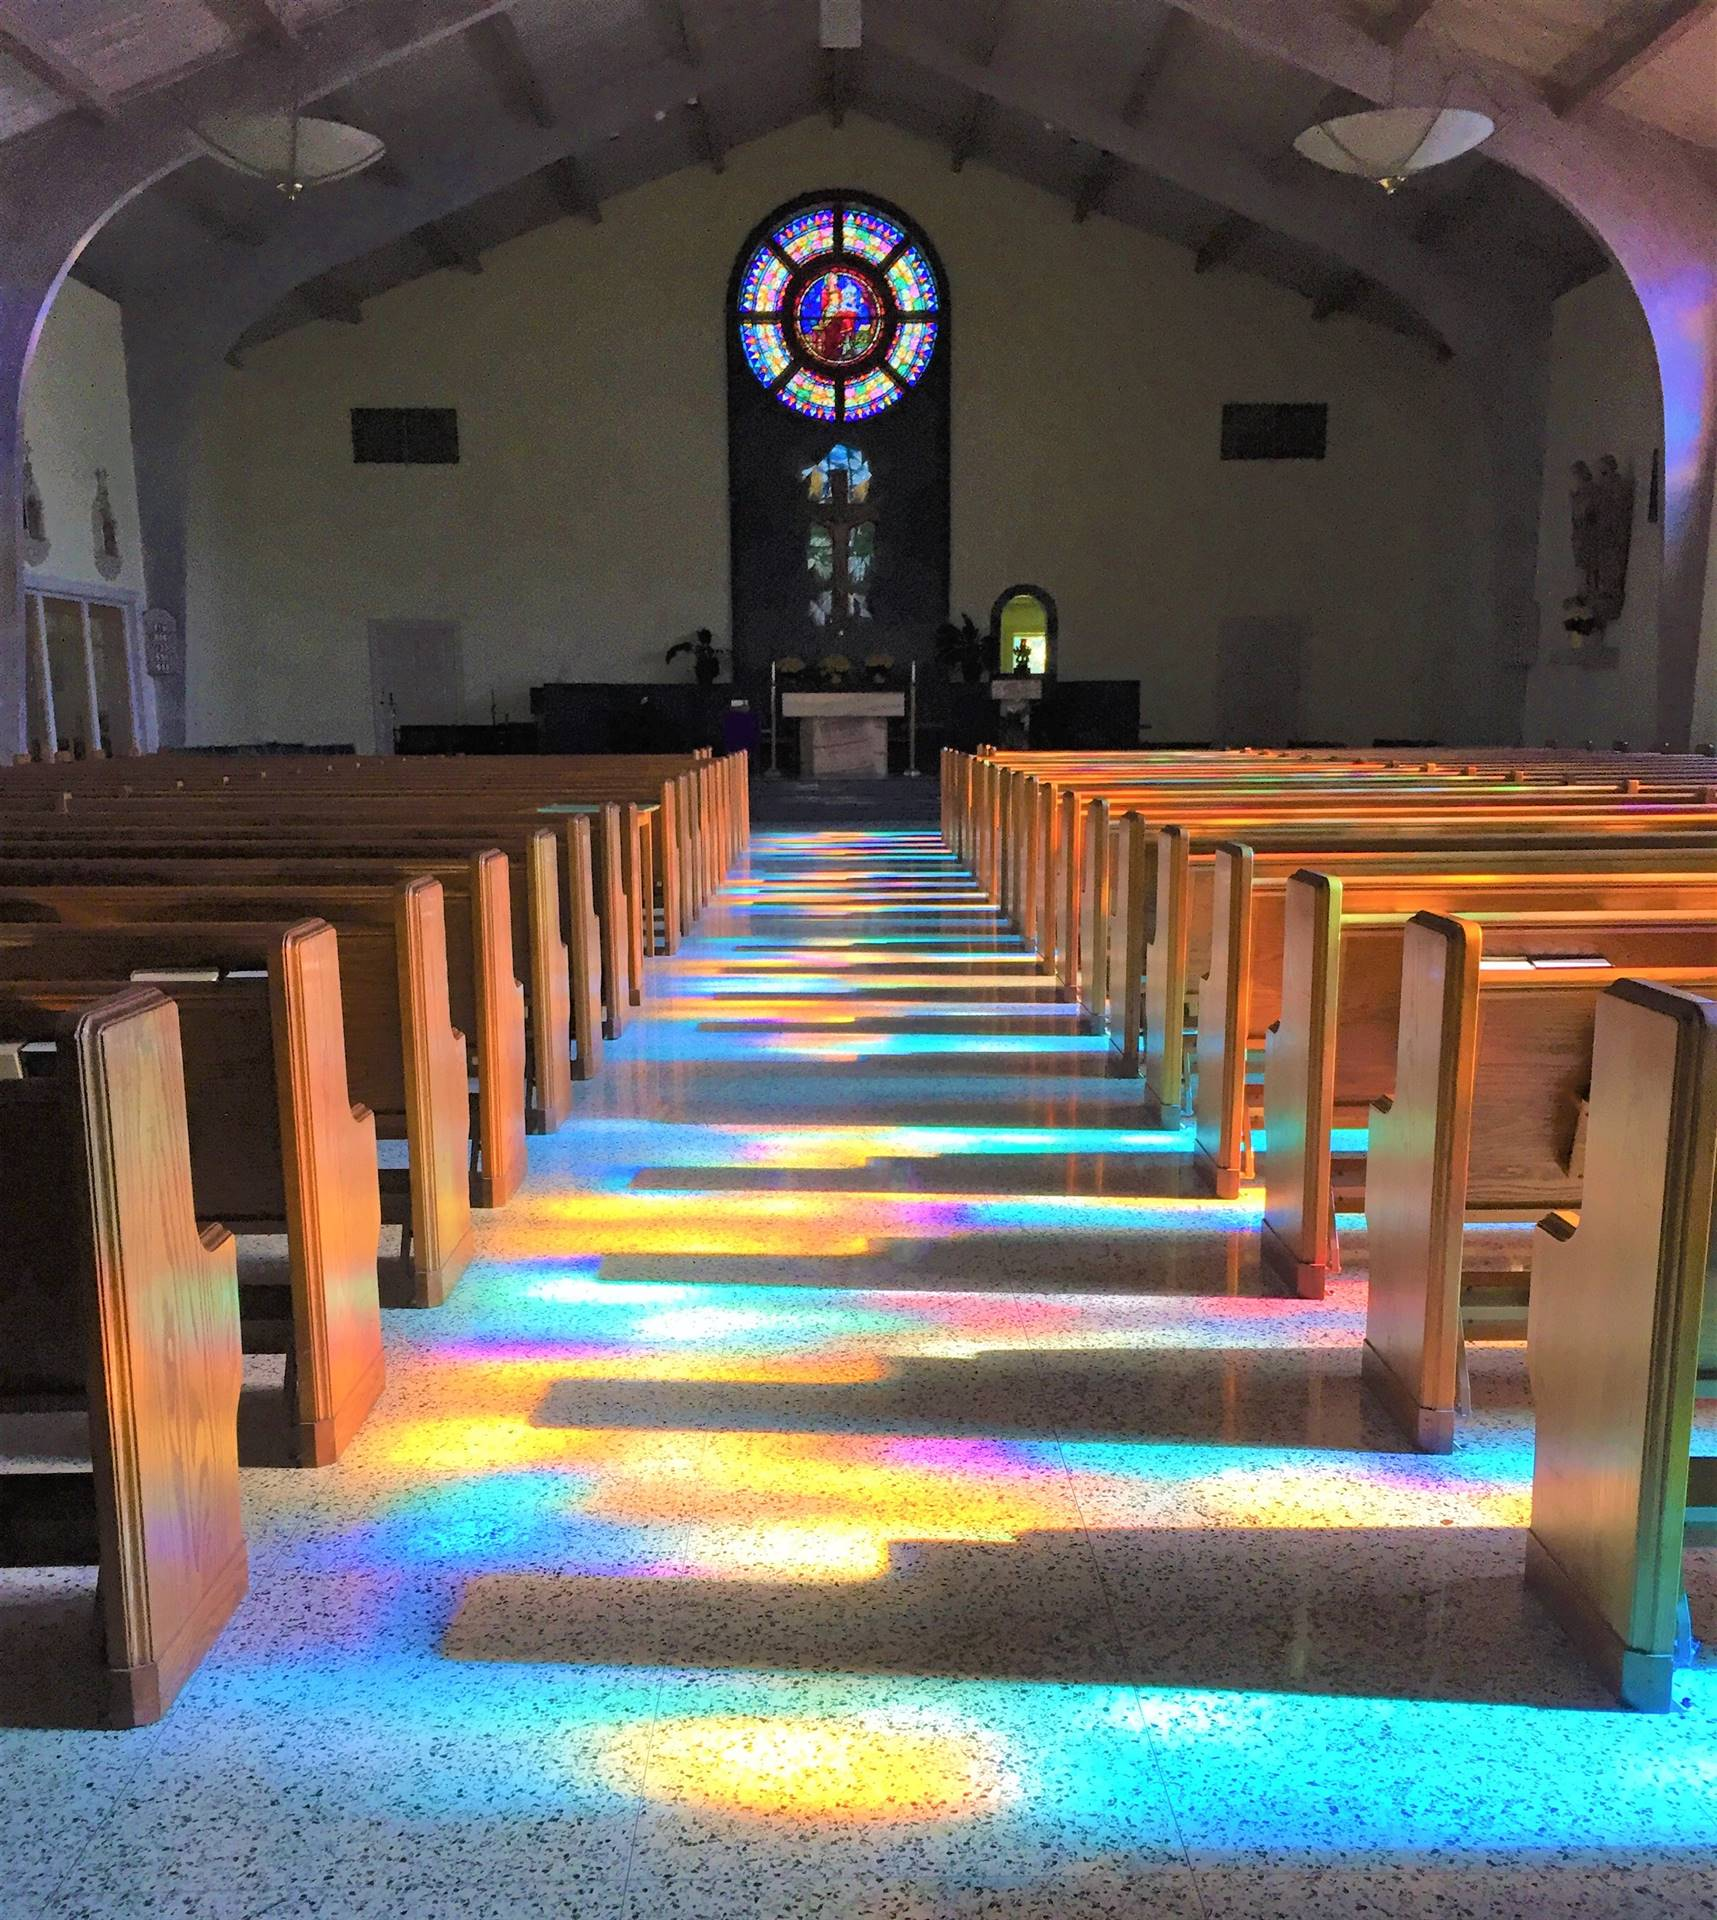 Stained Glass Windows Shining Into the Church